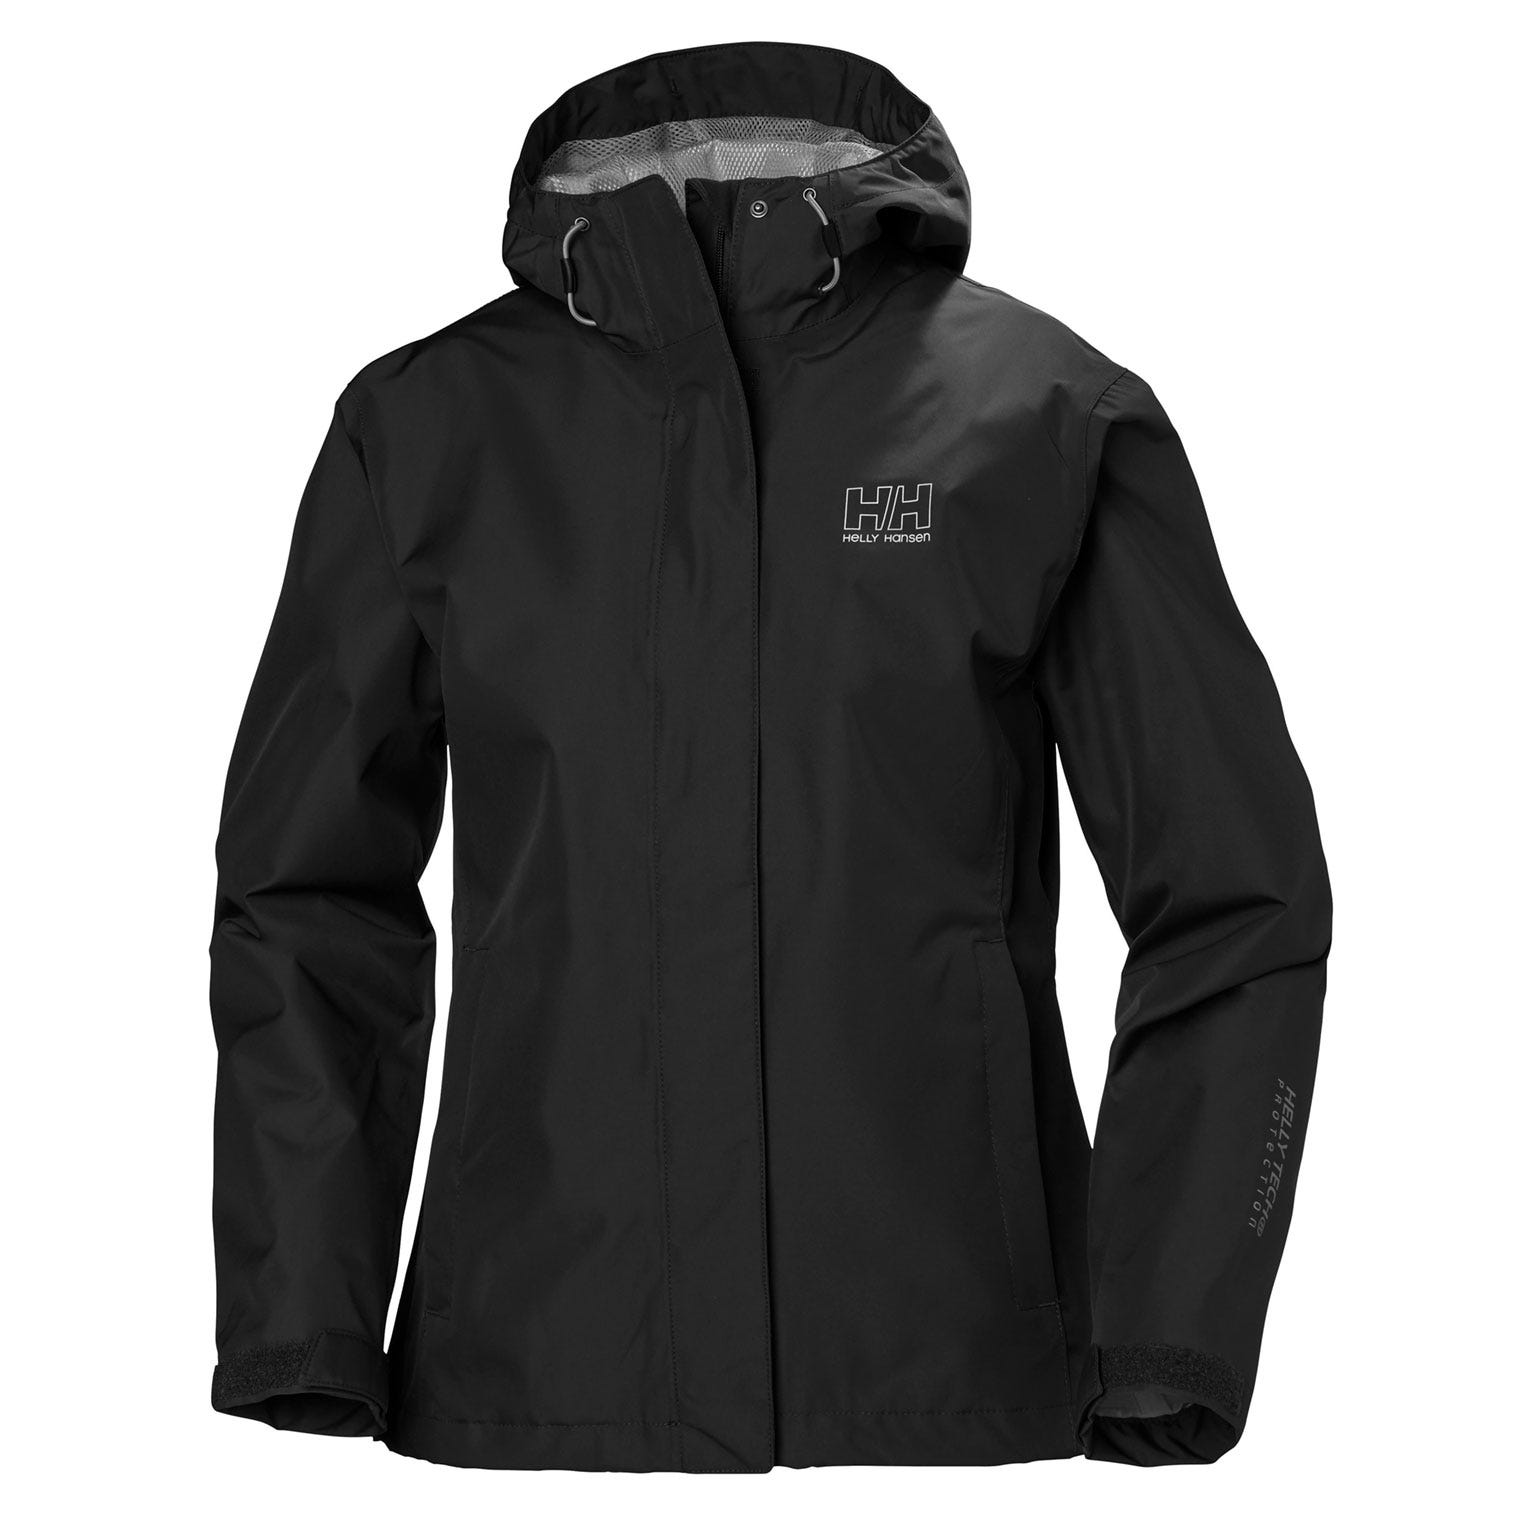 Helly-Hansen mens Seven J Waterproof Windproof and Breathable Rain Jacket With Hood